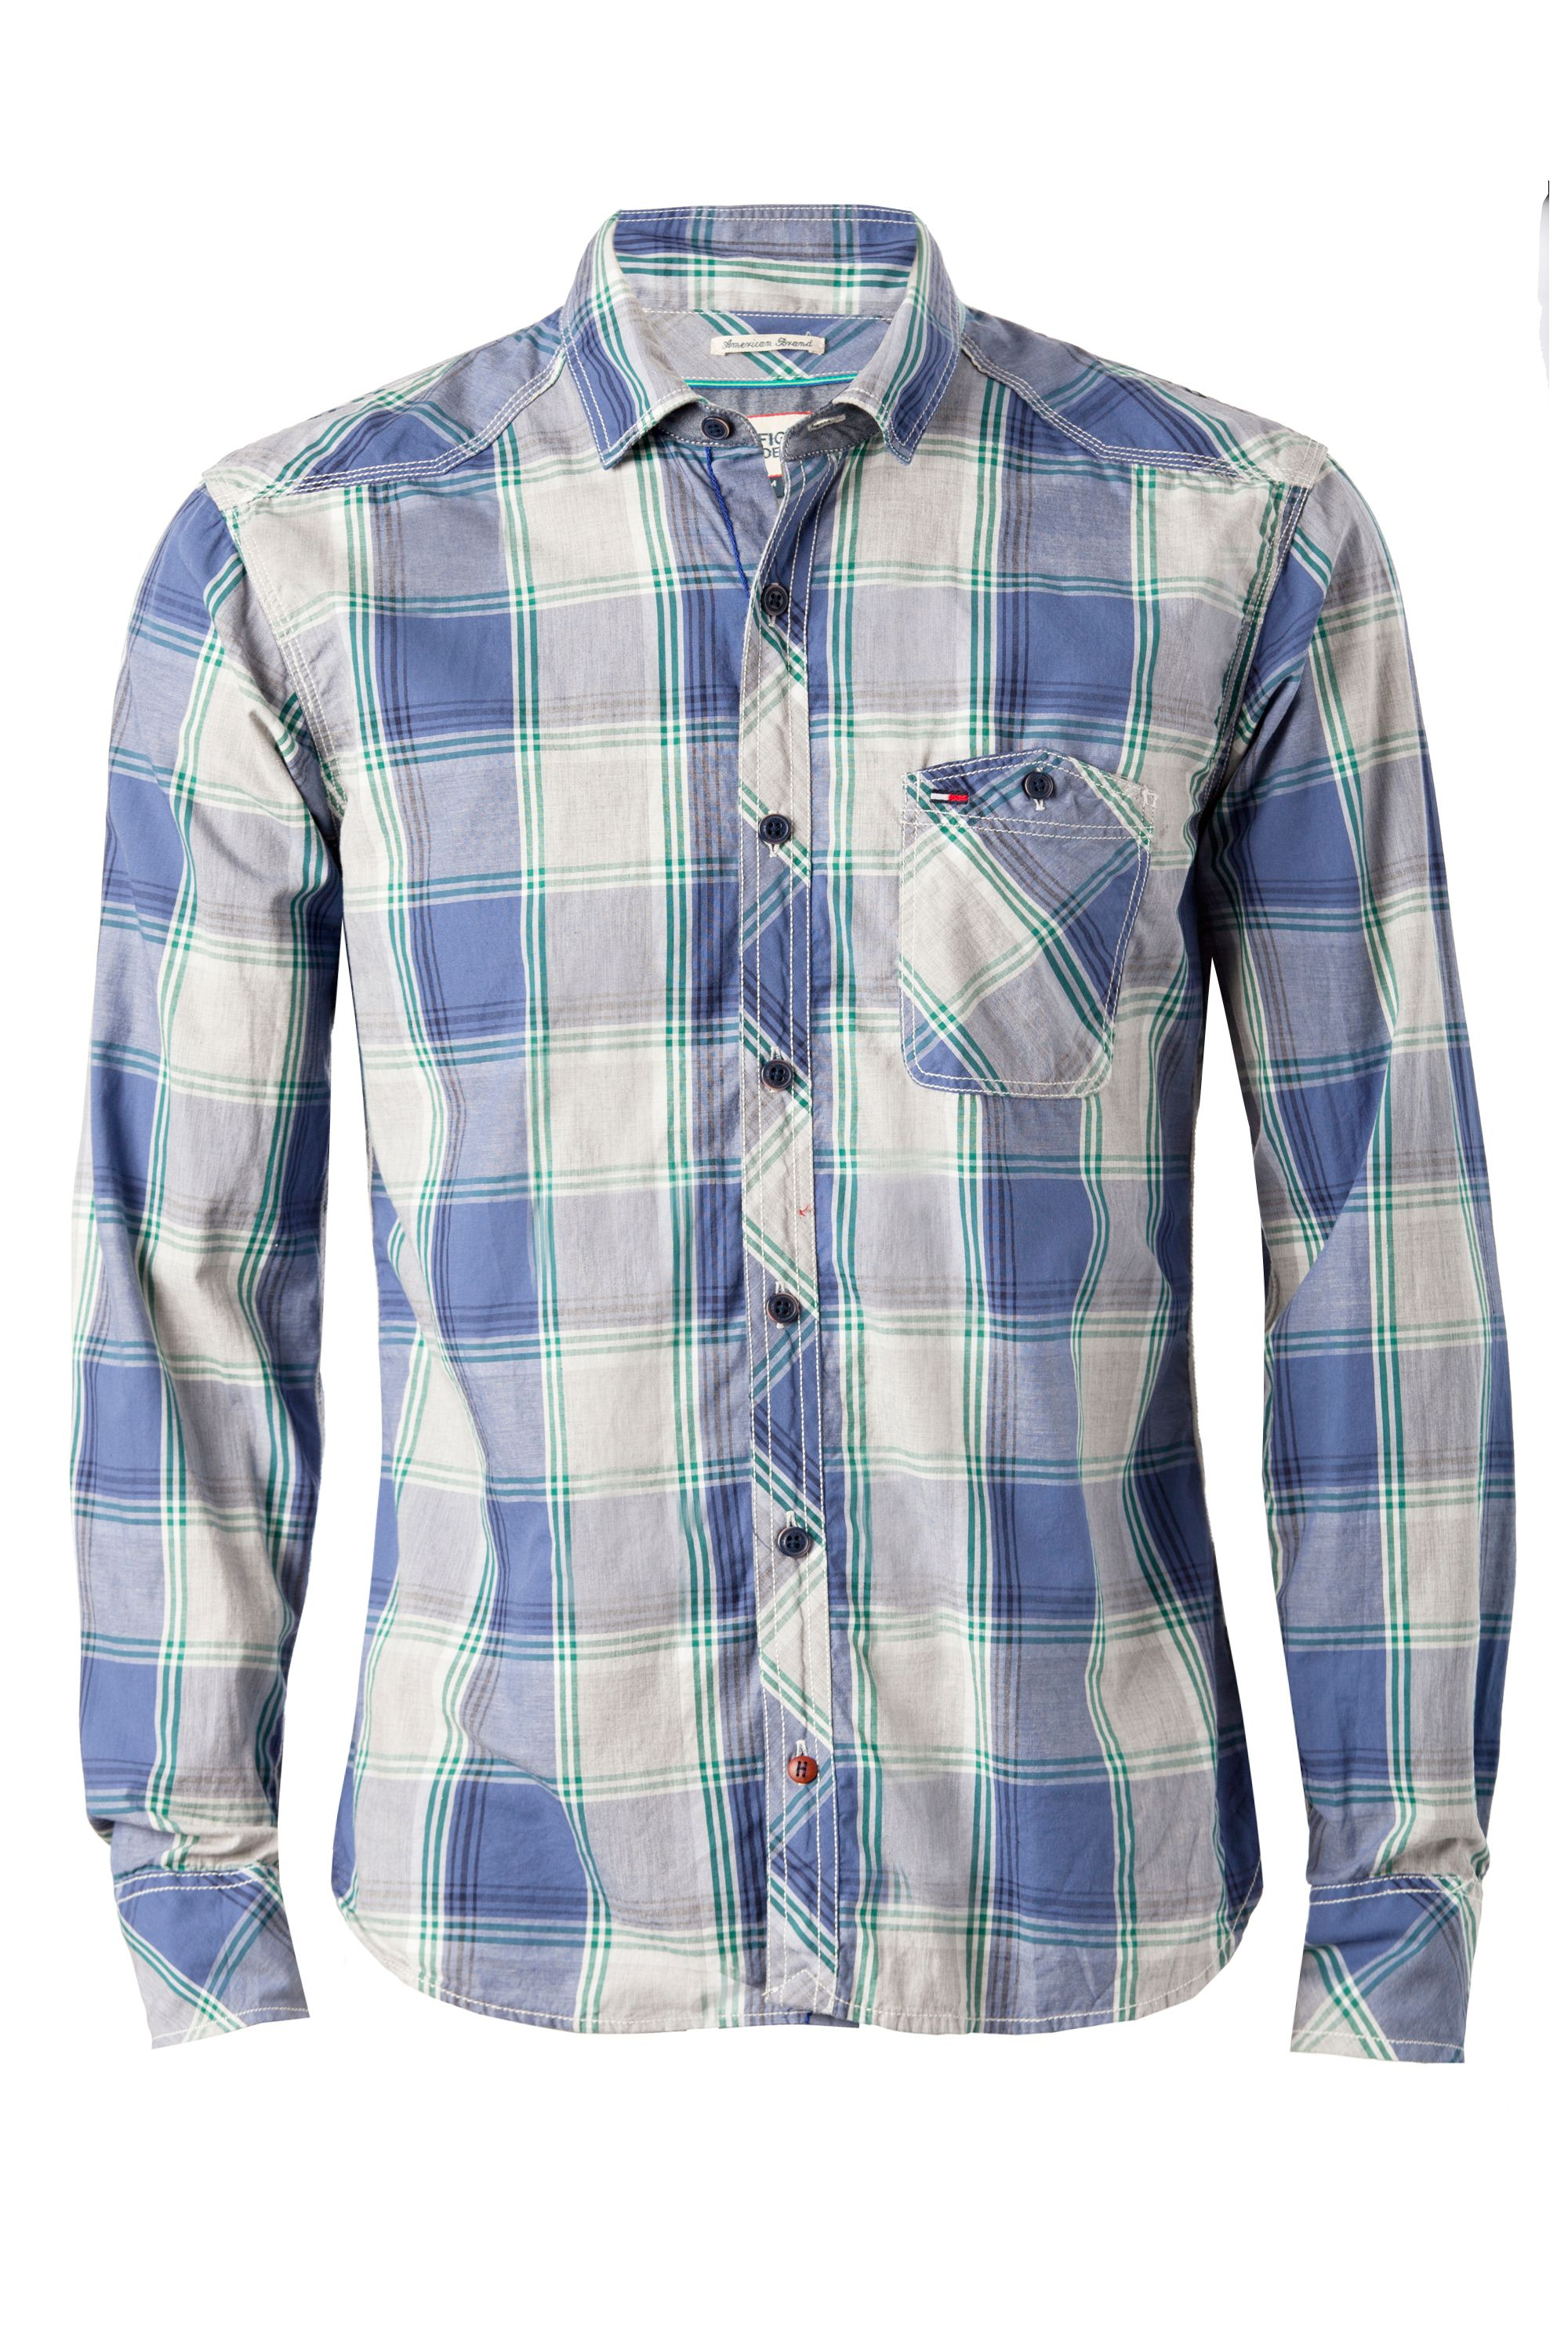 Lincon check long sleeve shirt